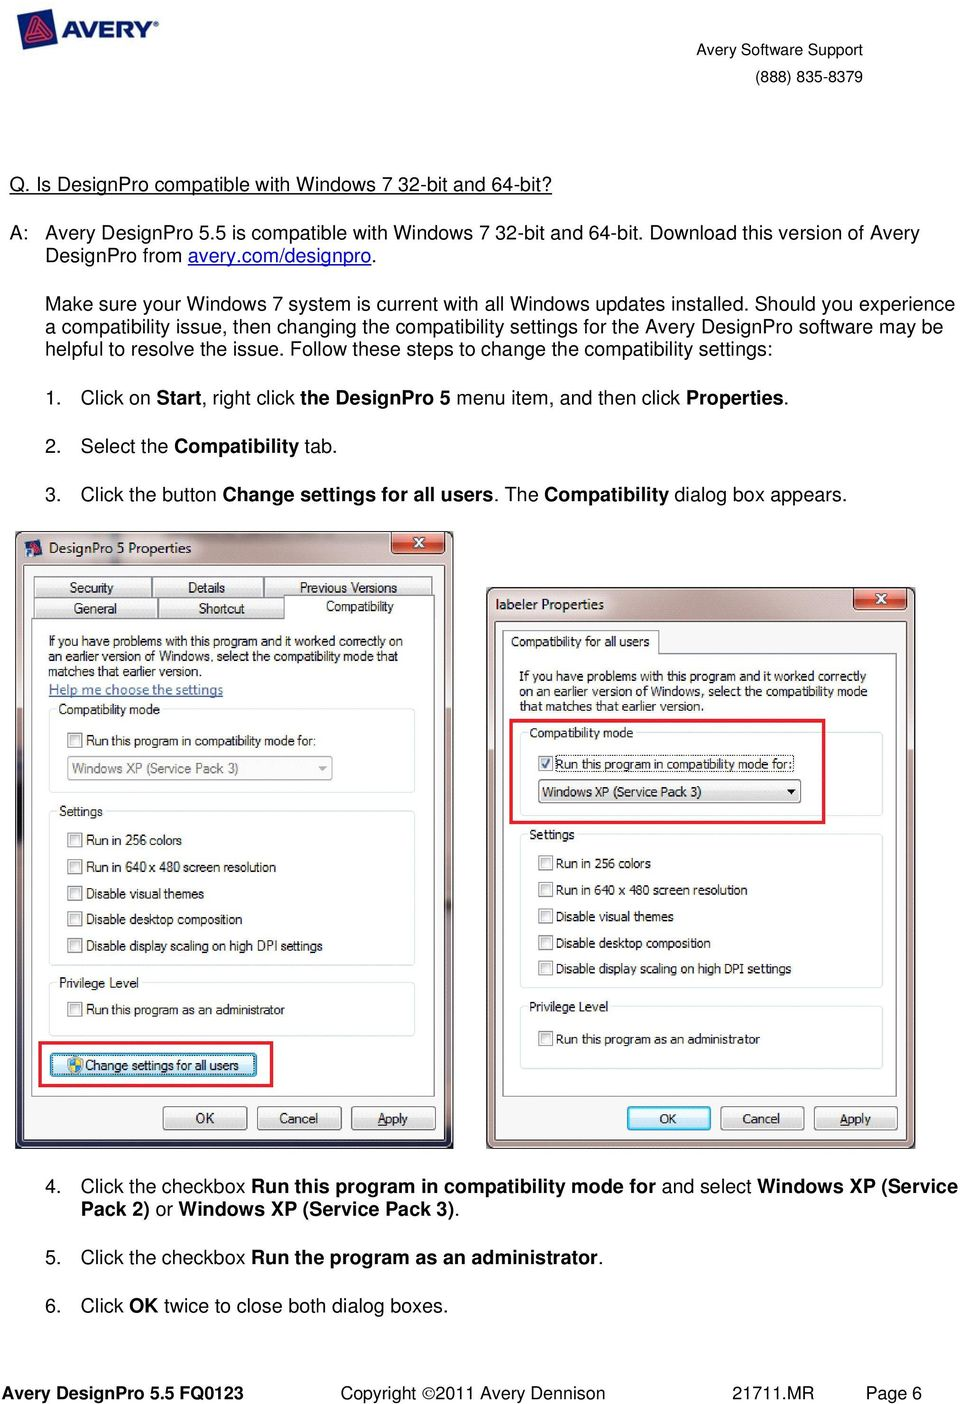 Avery designpro frequently asked questions pdf should you experience a compatibility issue then changing the compatibility settings for the avery designpro reheart Choice Image